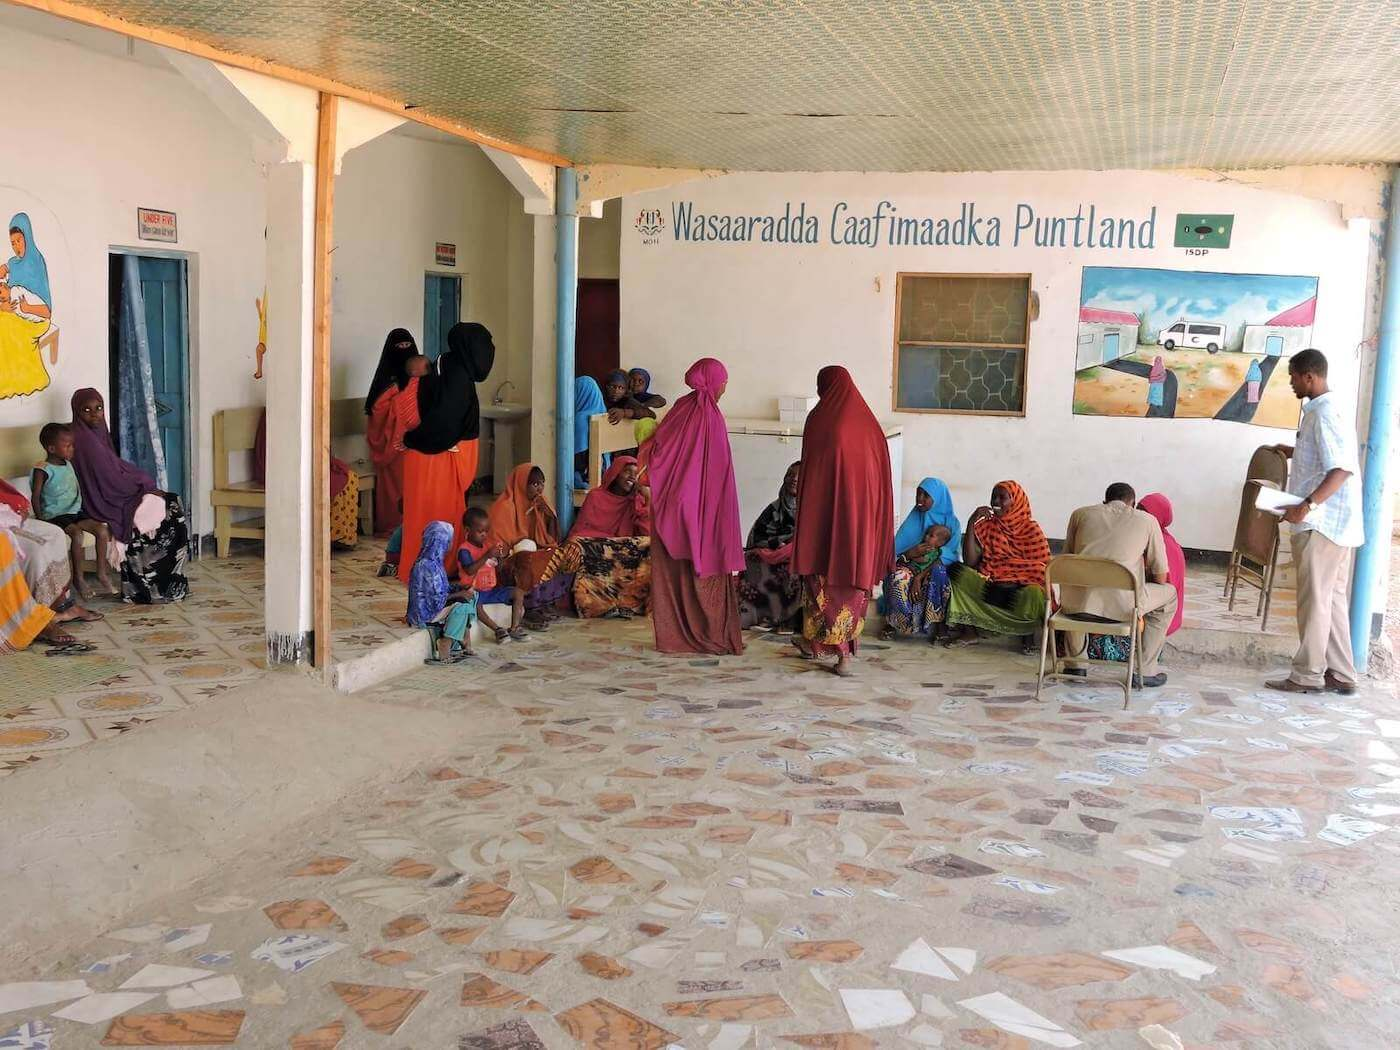 Woman and children at a rural hospital in Somalia